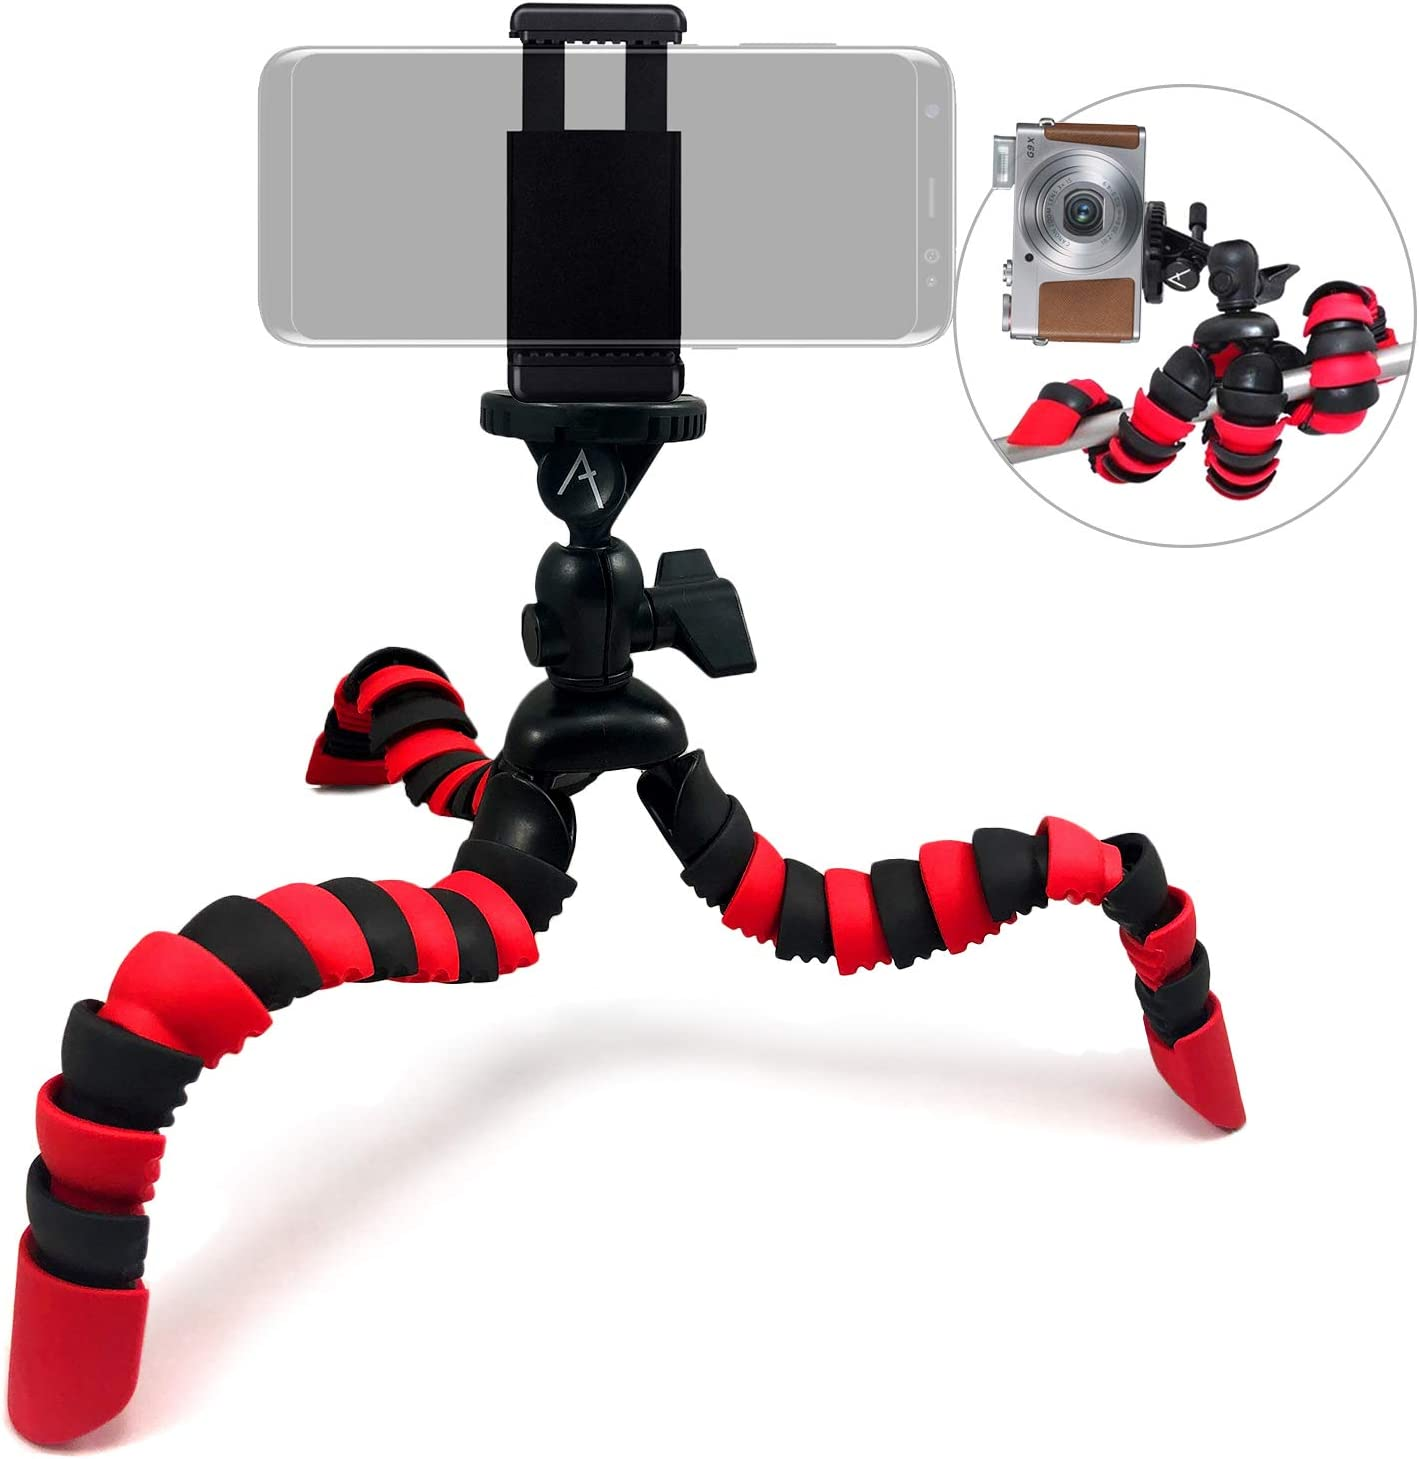 Acuvar 12 Inch Flexible Camera Tripod with Wrapable Disc Legs /& Quick Release Plate Universal Smartphone Mount for All Smartphones